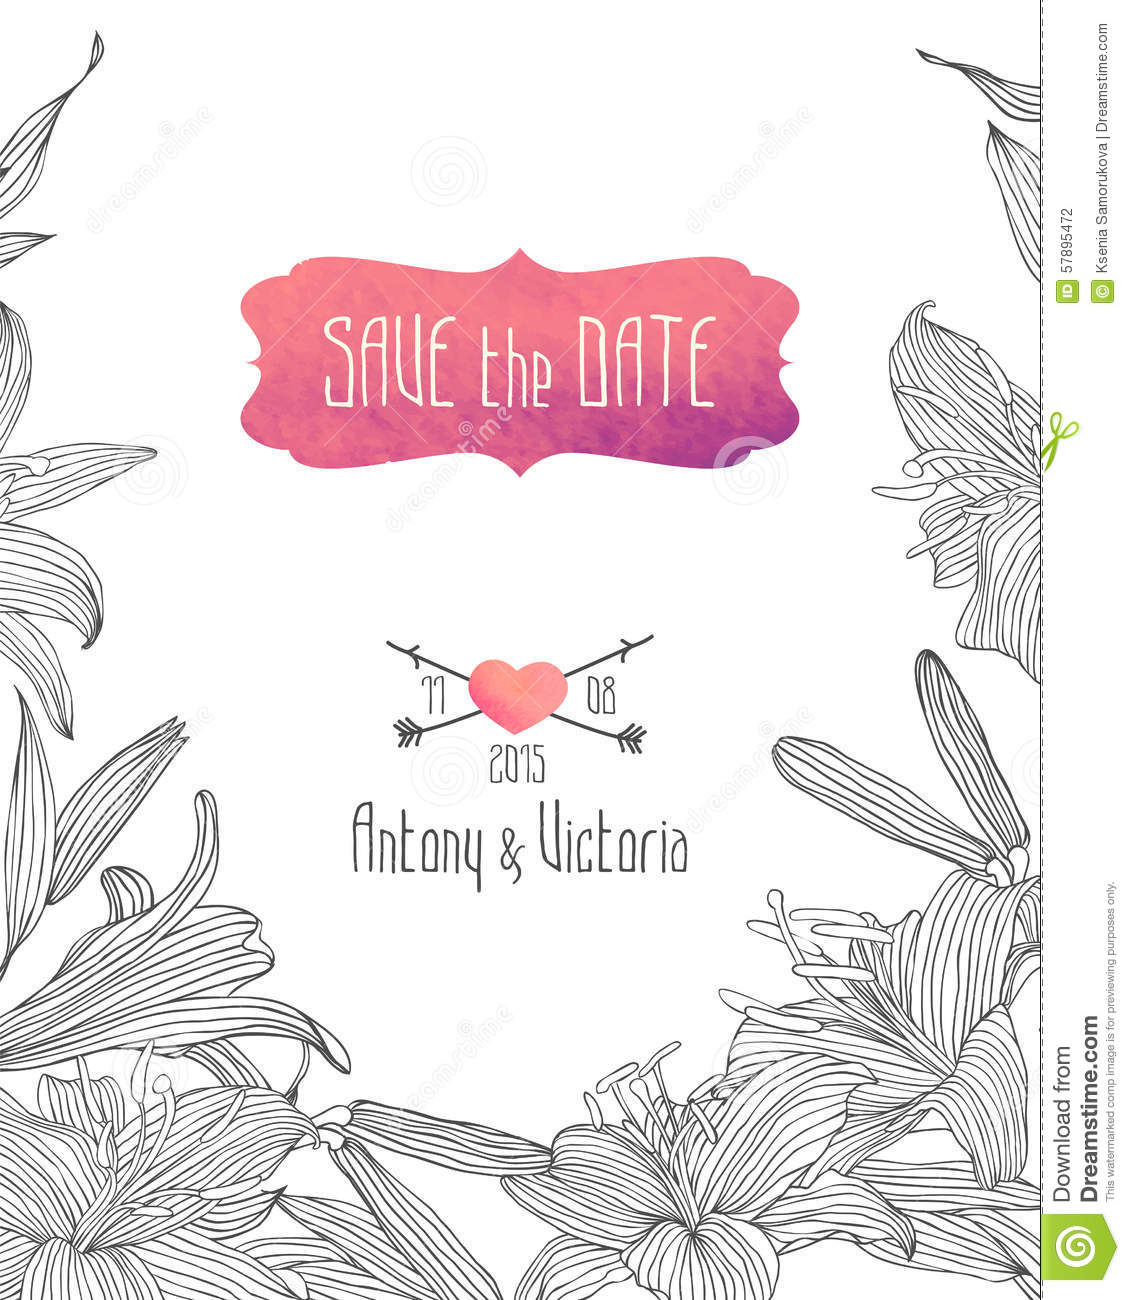 wedding invitation save the date template linear royal lily wedding invitation save the date template linear royal lily flowers